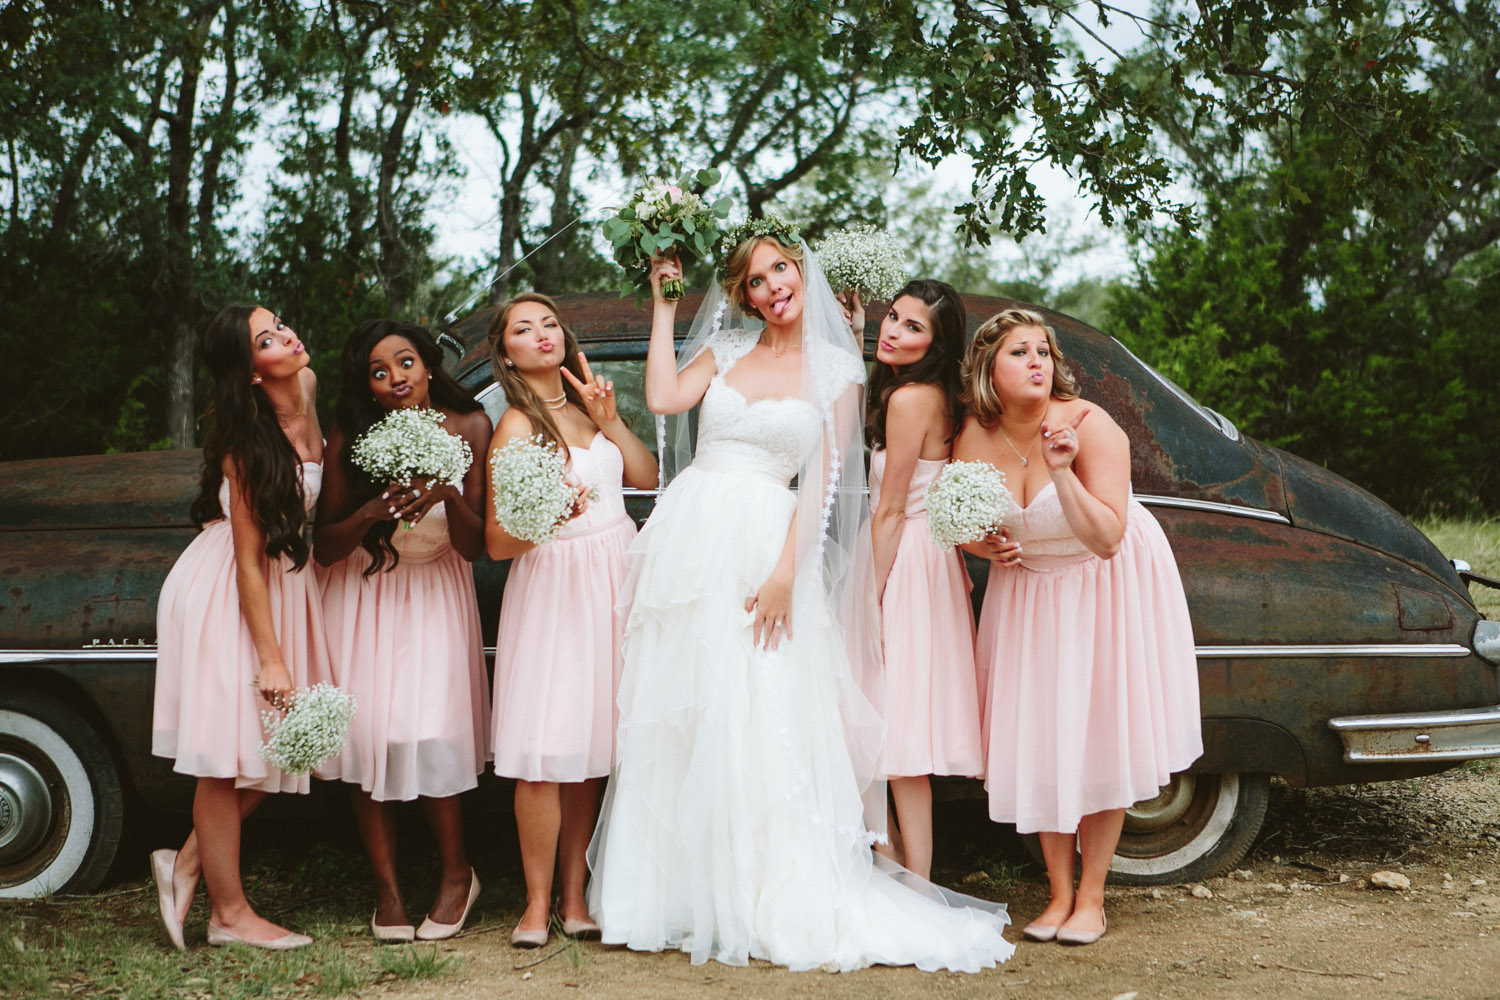 Fun Bride and Bridesmaids | Lisa Woods Photography